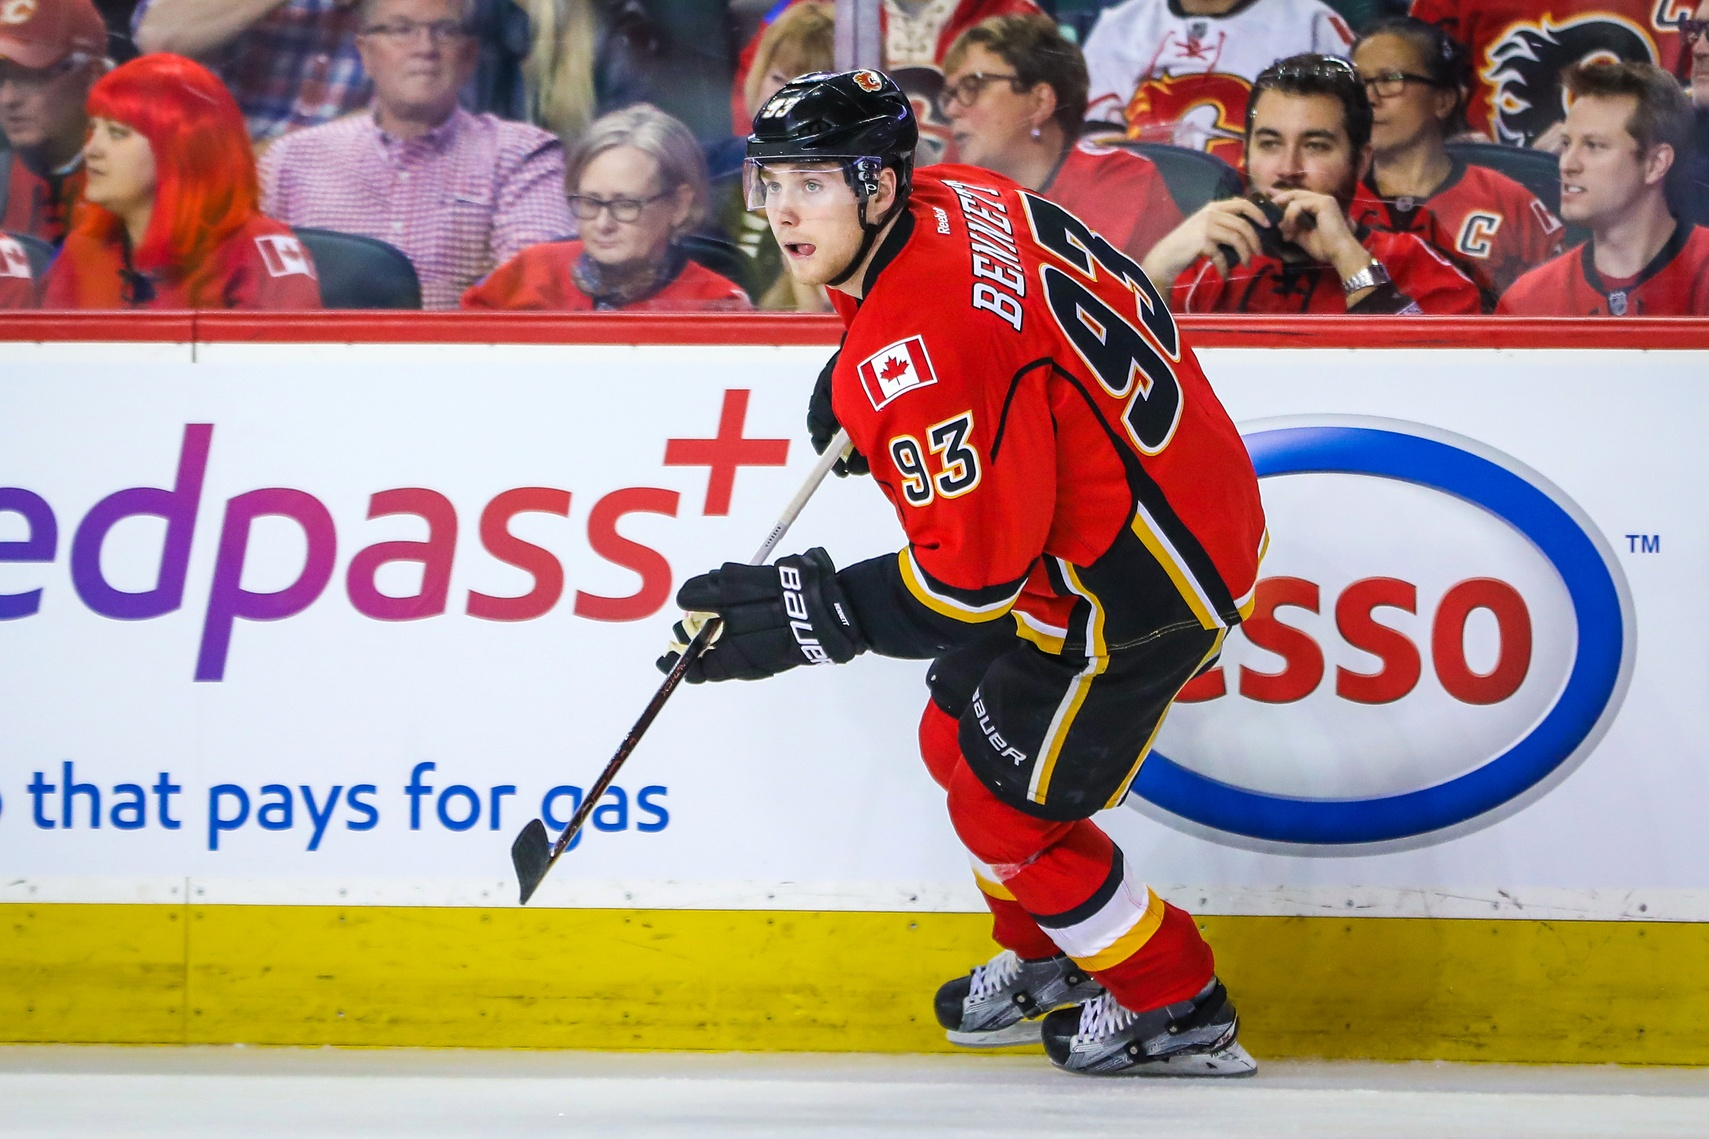 Forward Sam Bennett signs two-year deal to remain with Flames